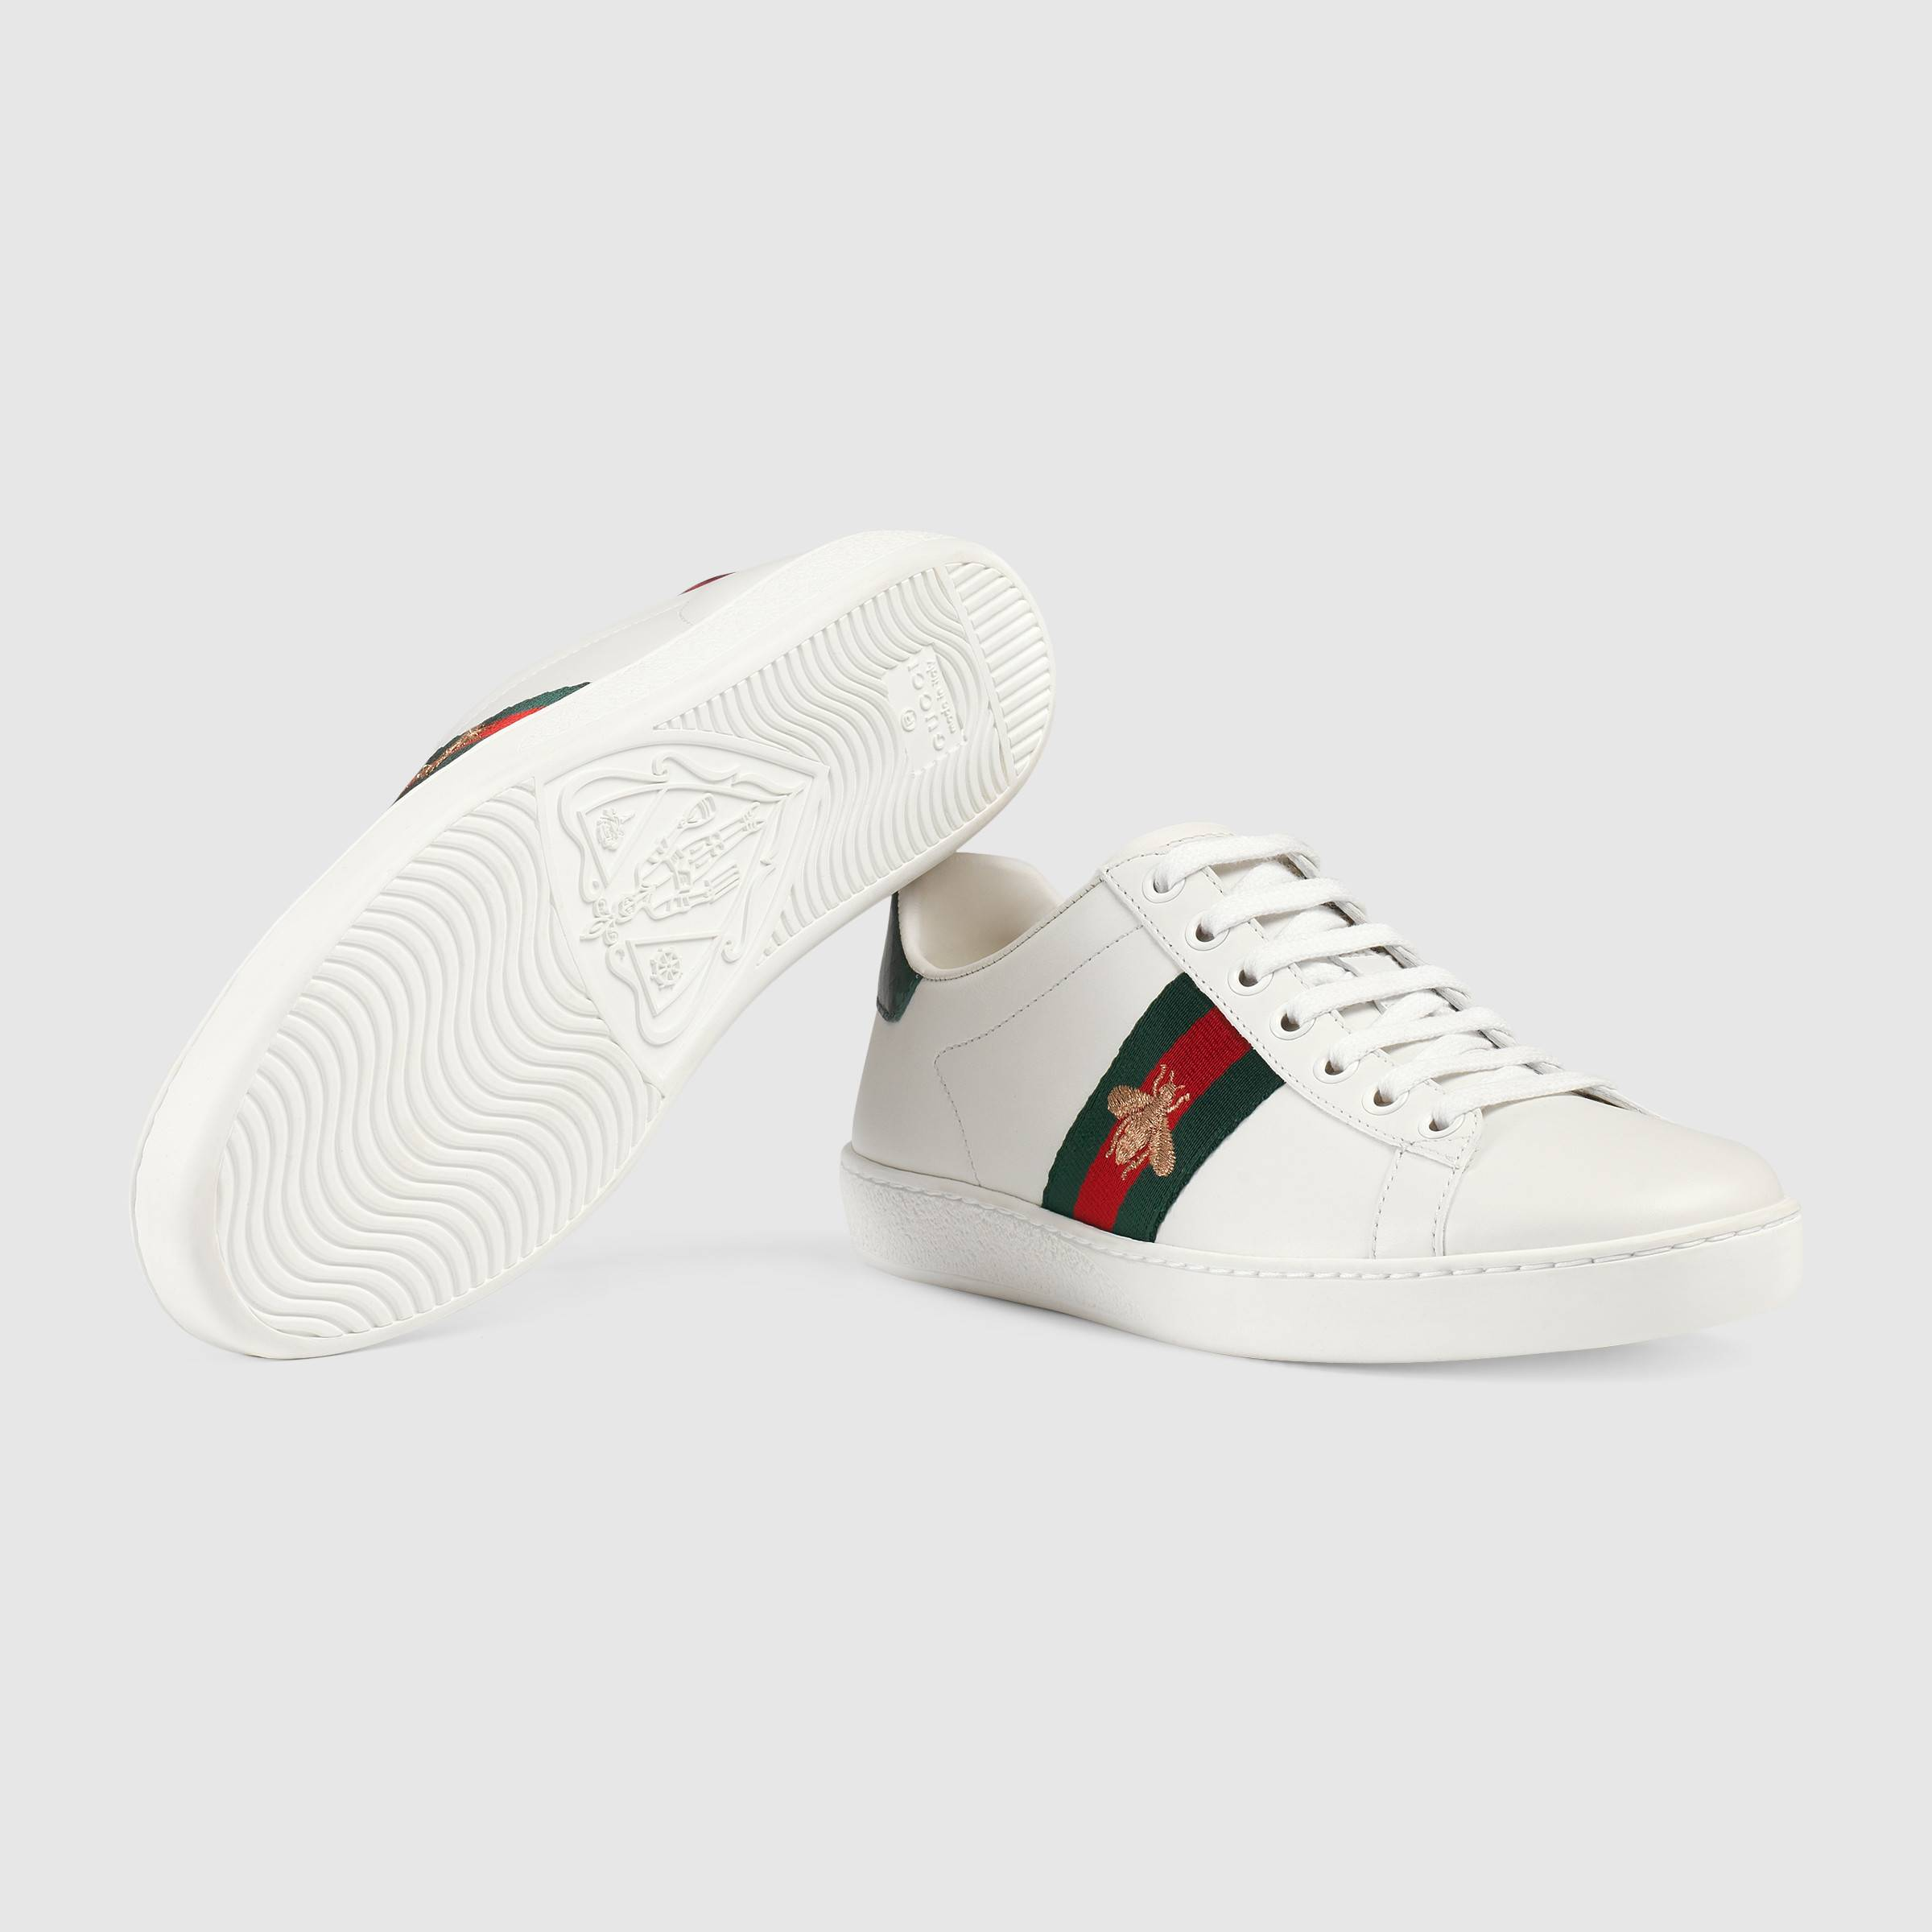 Gucci  - Ace embroidered sneakers $620